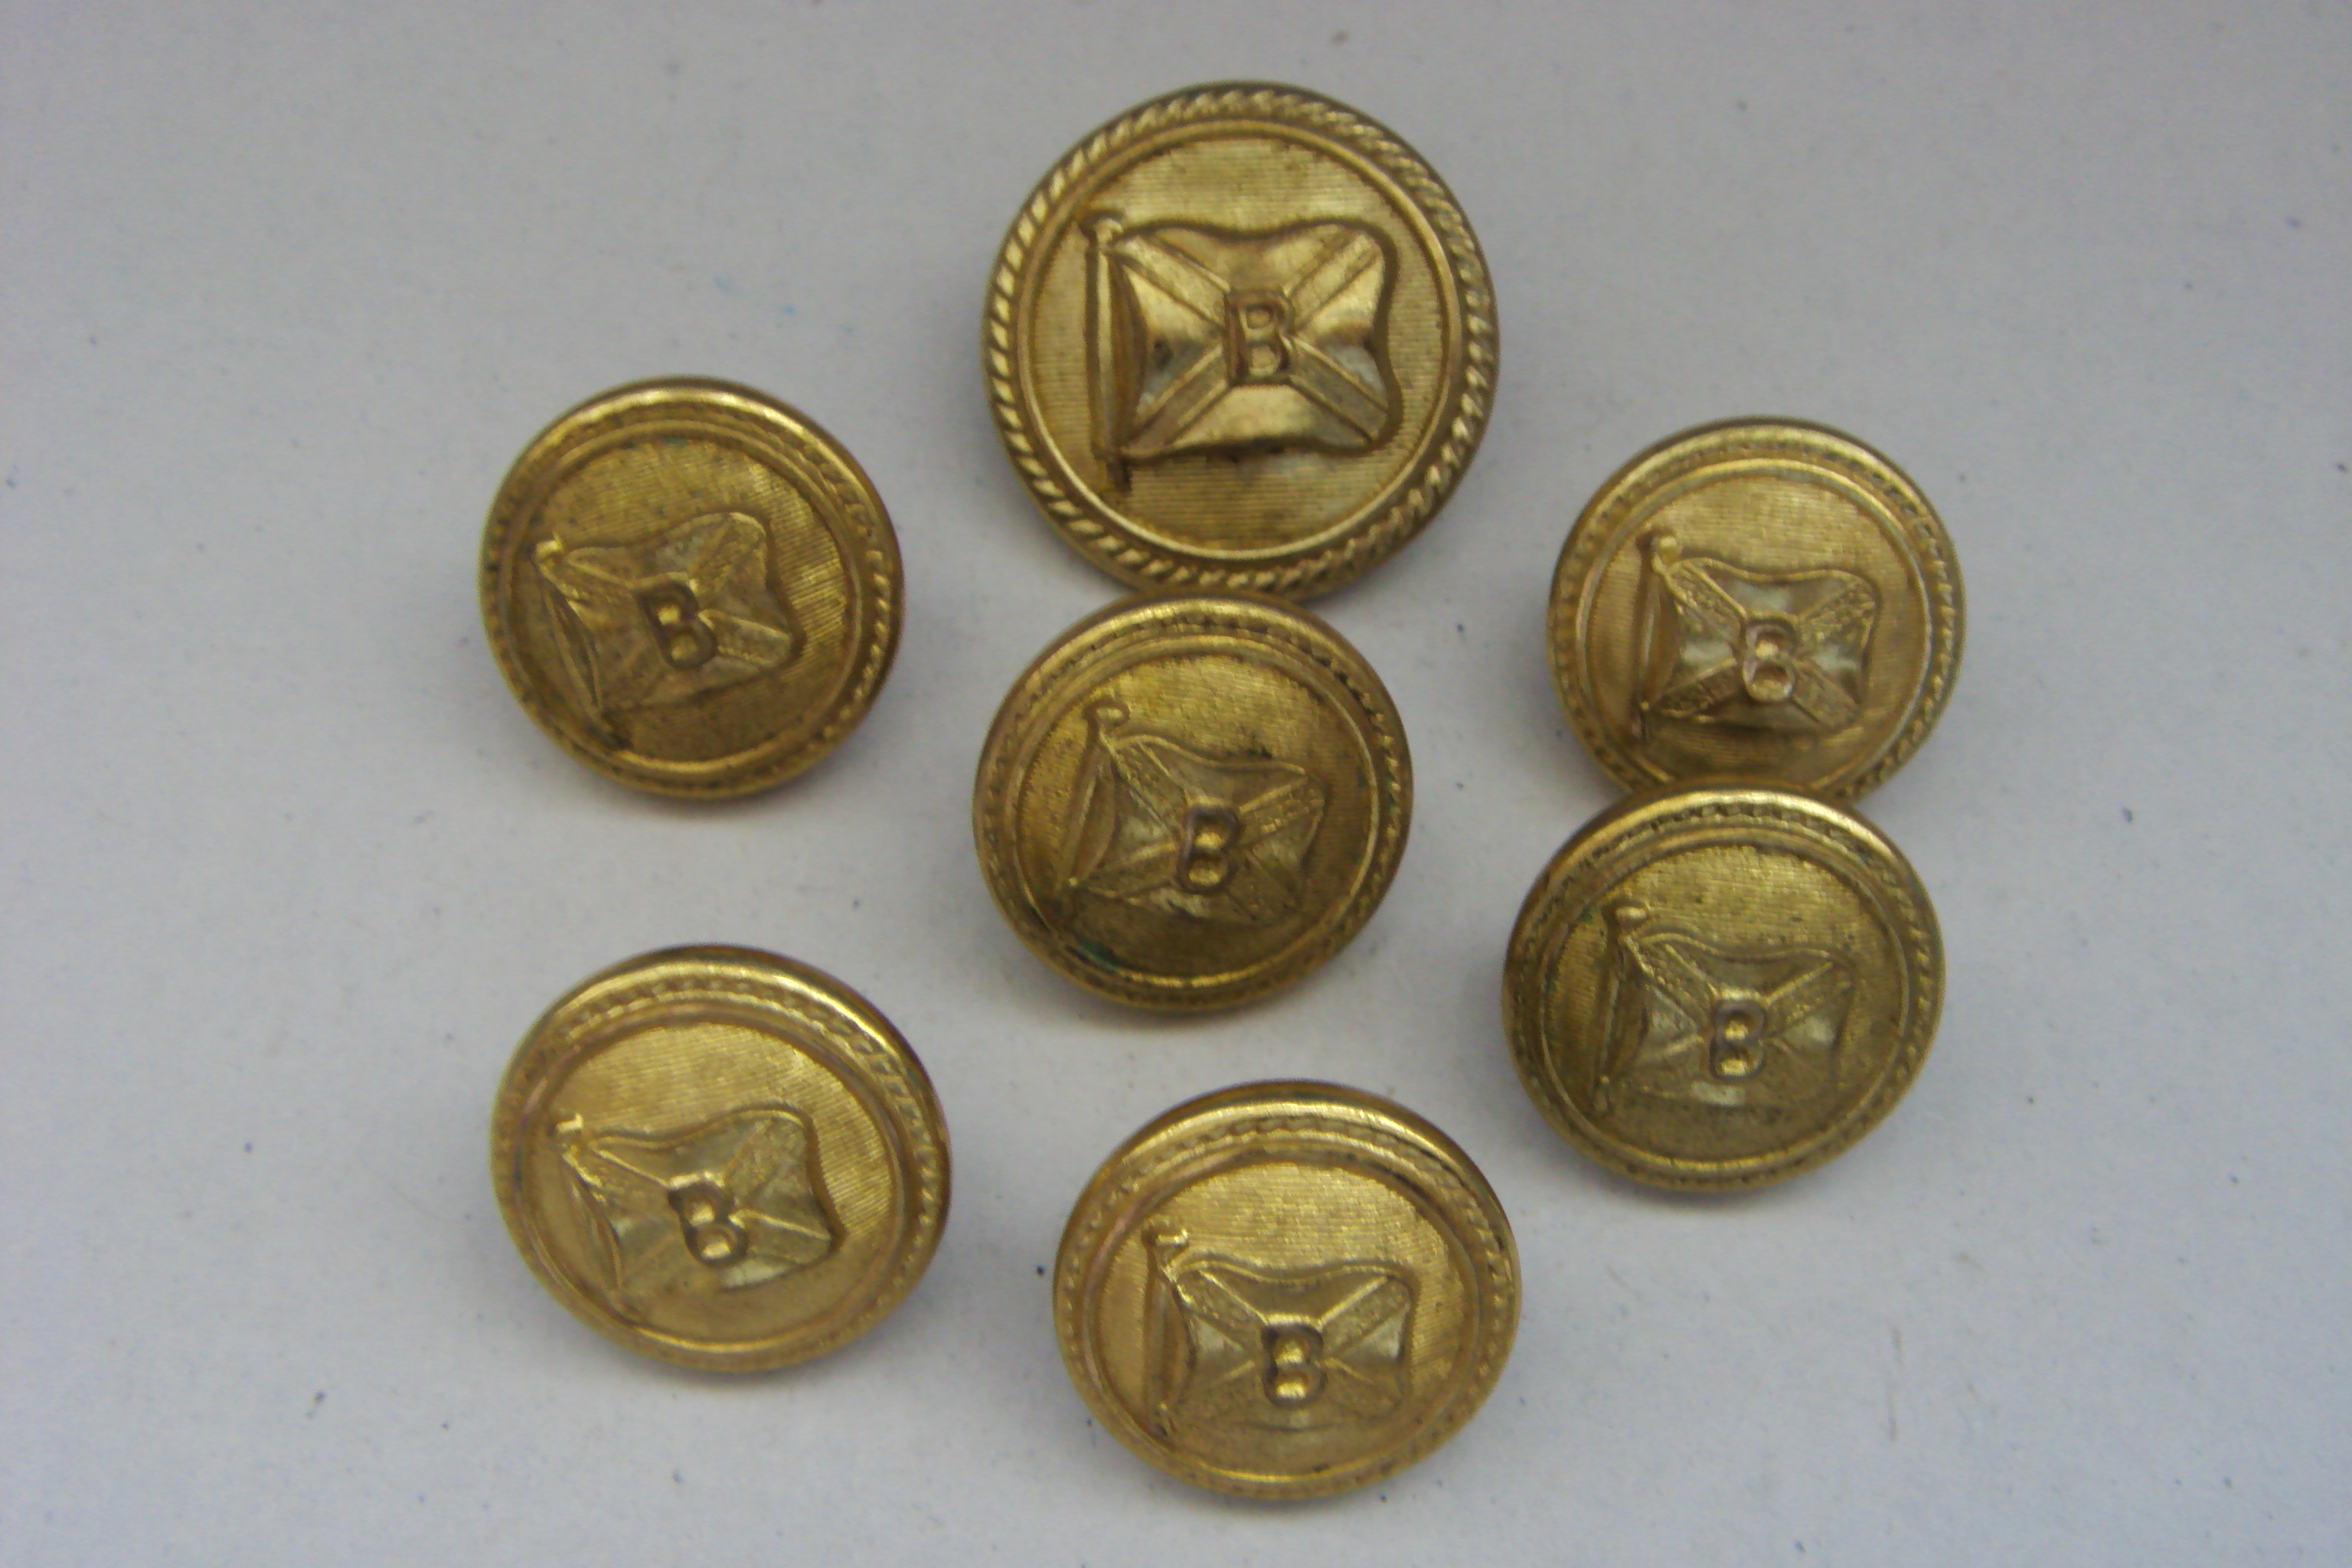 ASSORTED SIZE COLLECTION OF GOLD COLOURED OFFICERS COAT BUTTONS FROM THE BOOTH STEAMSHIP LINE CIRCA 1930's